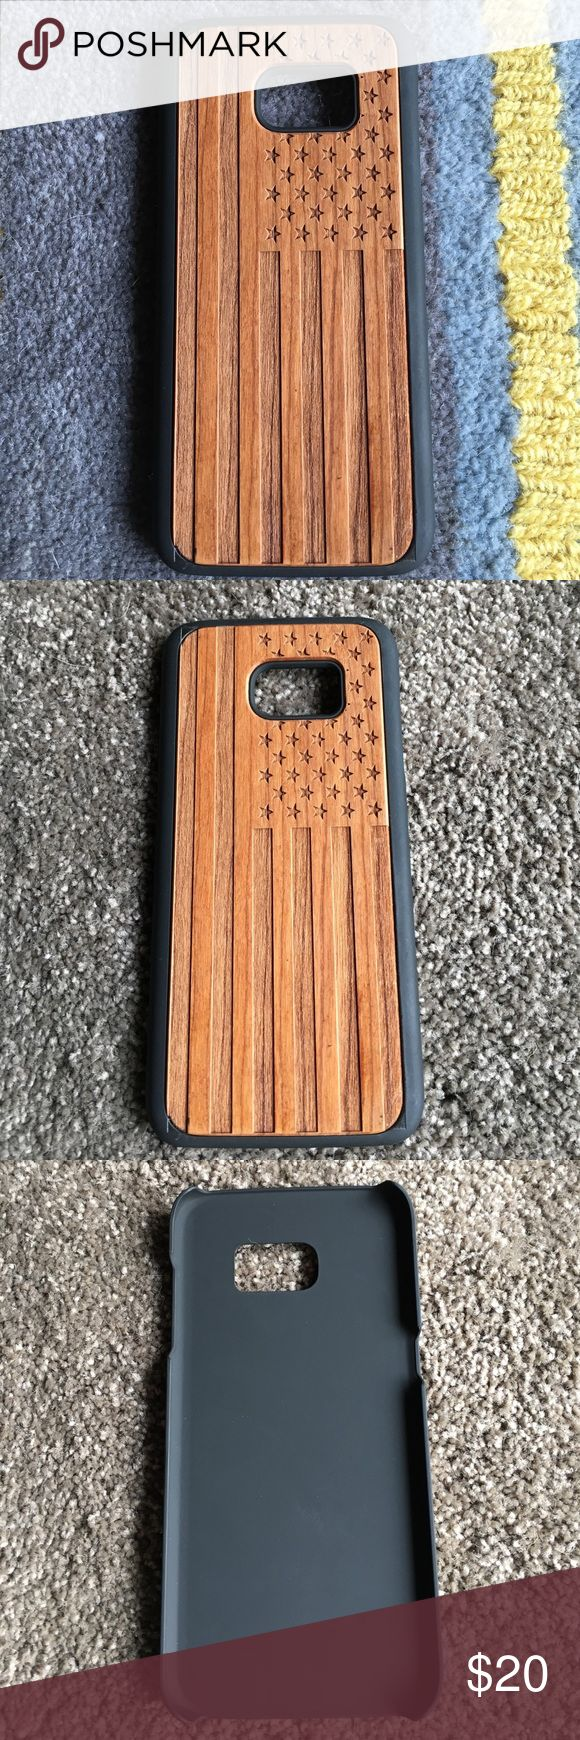 Samsung 7S EDGE Wooden Case. Hand finished real wood cover combined with a polycarbonate case.  Unique natural wood grain and finish precision laser cut and engraved wood natural feel and finish. Accessories Phone Cases